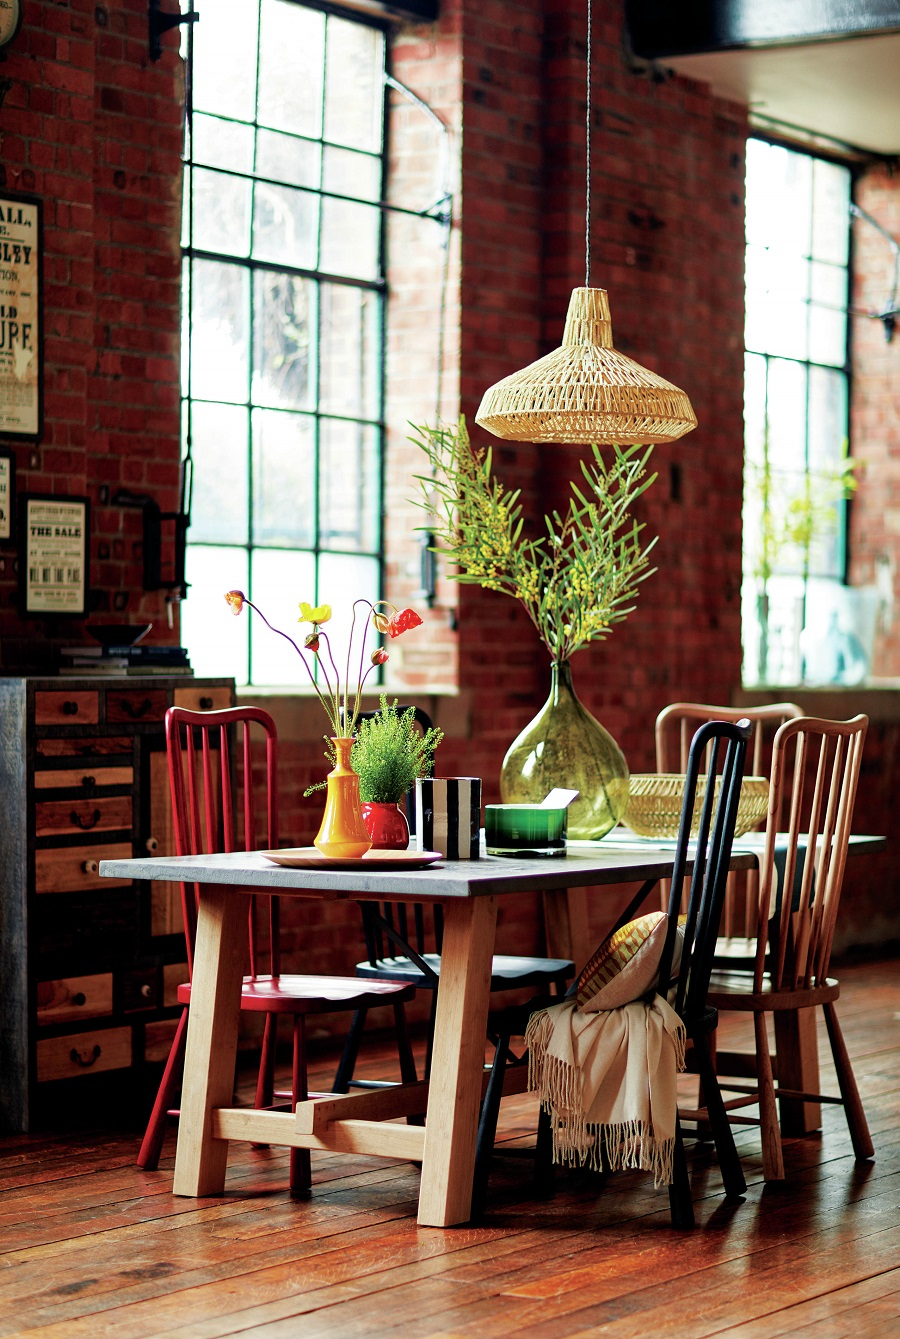 A Colourful Loft-Style Dining Space and How to Get The Look